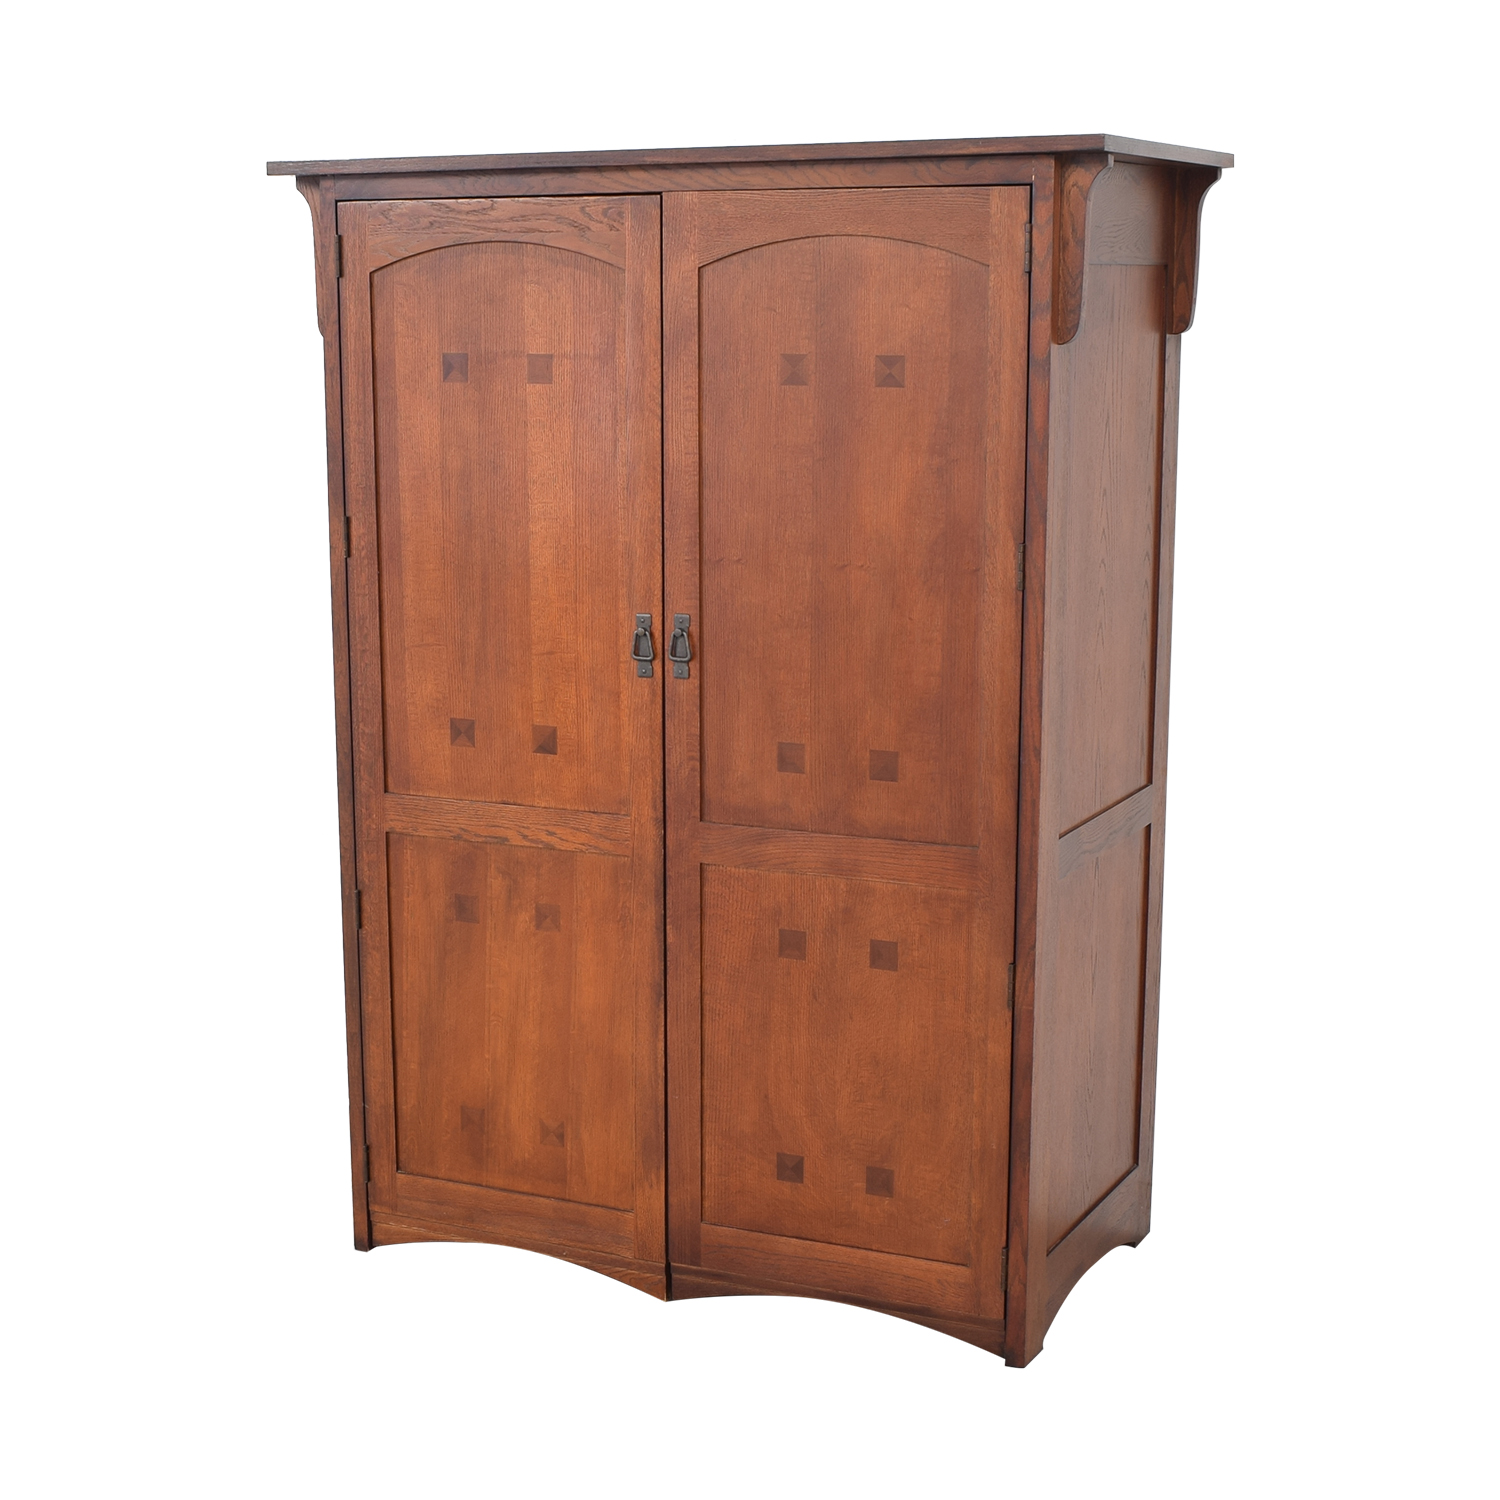 Southern Furniture of Conover Armoire Desk / Wardrobes & Armoires